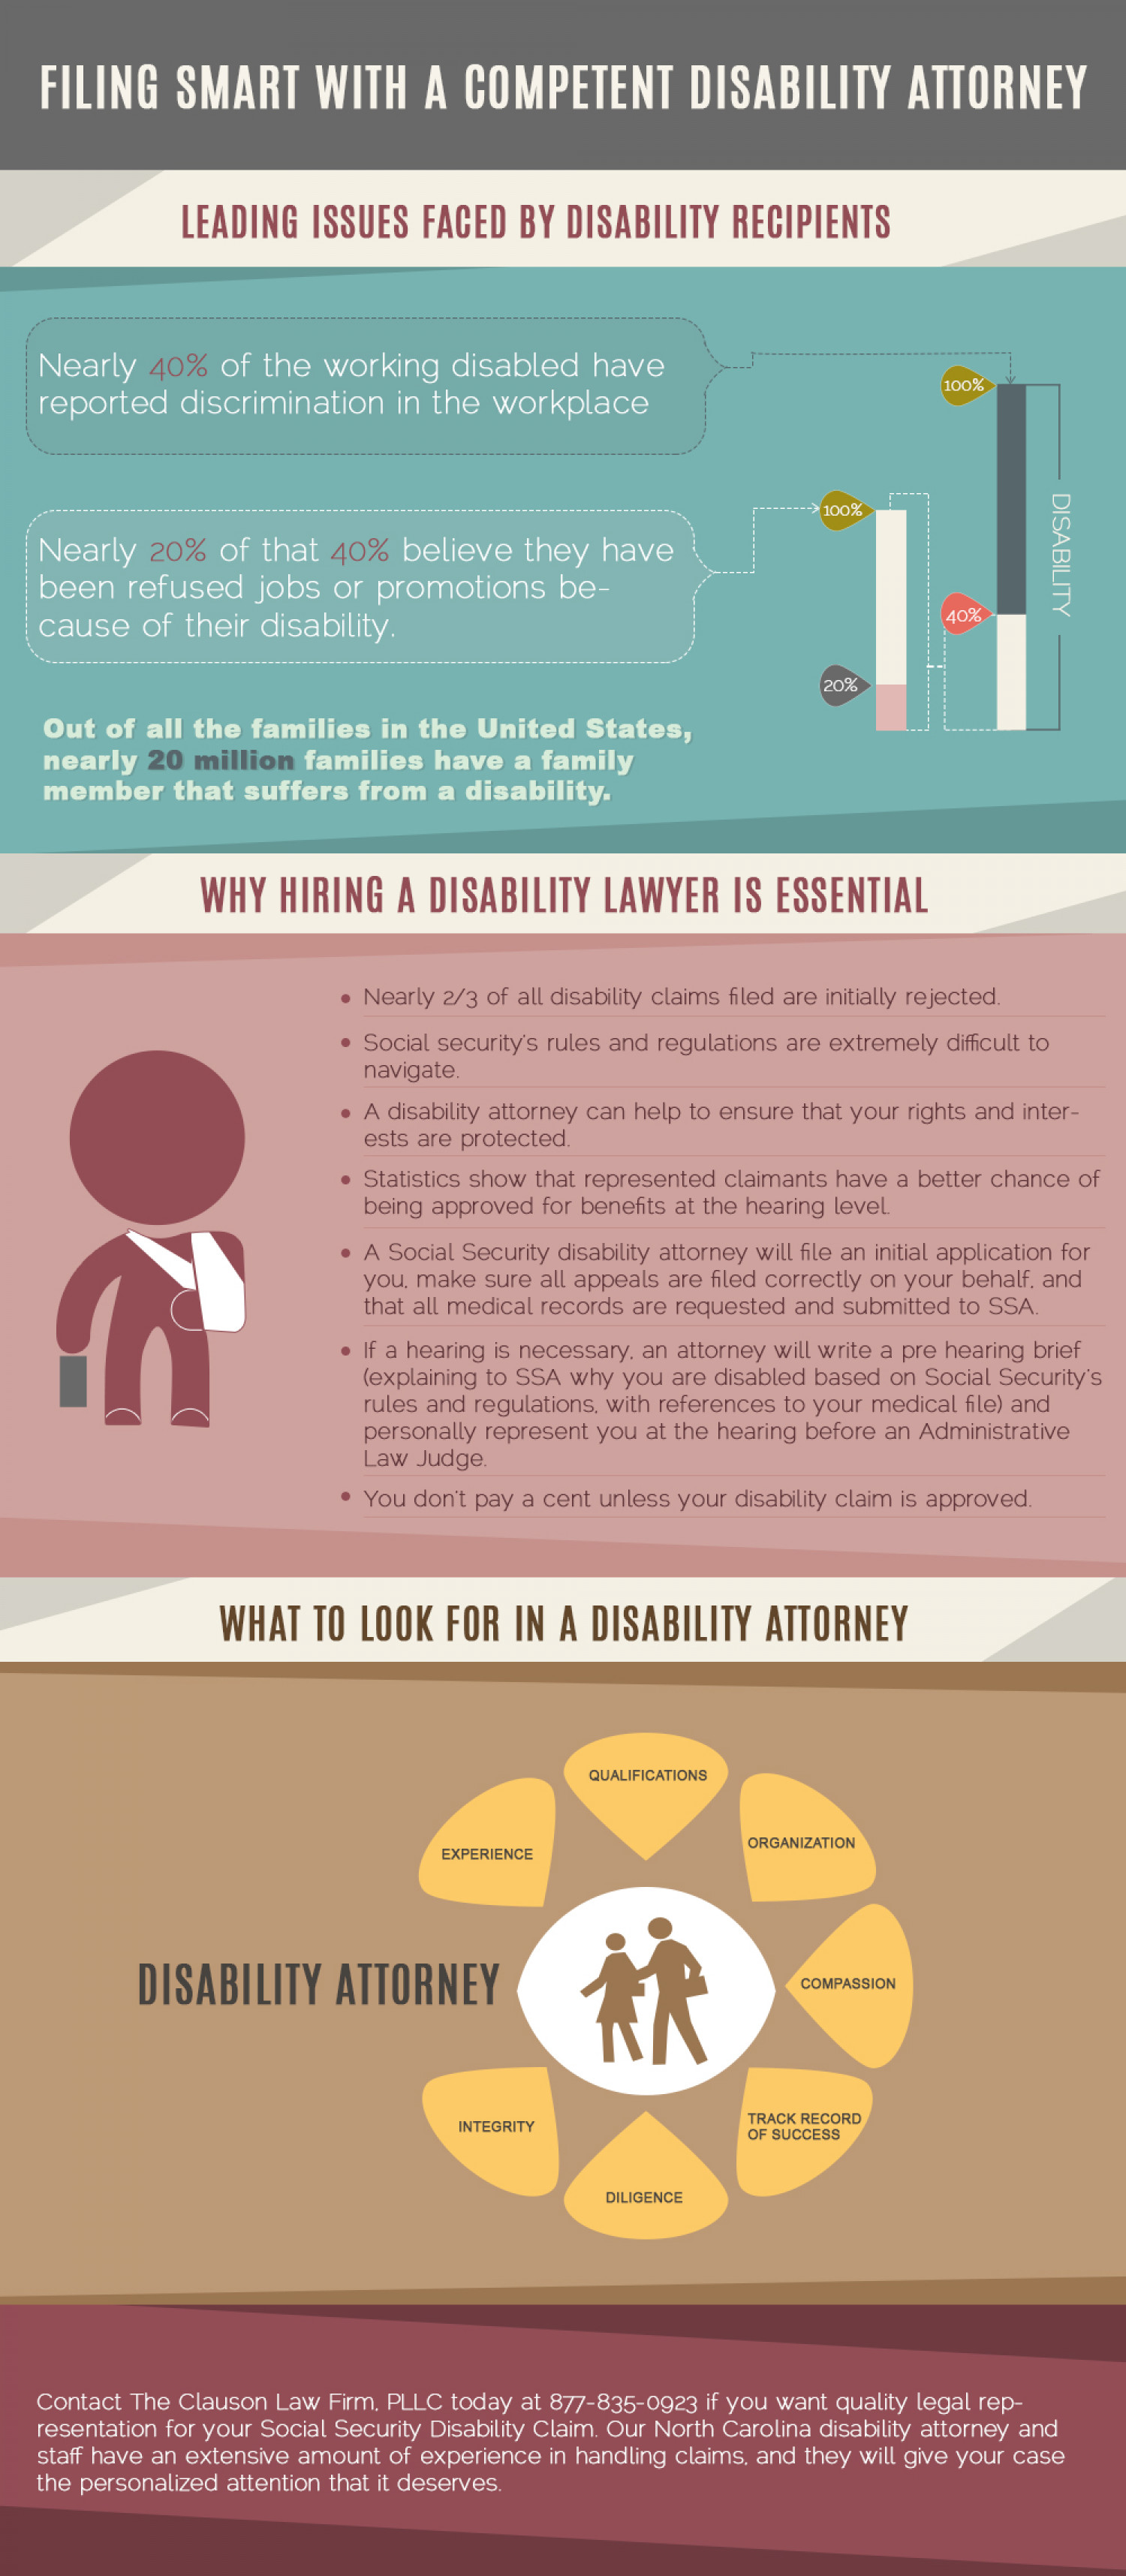 Filing Smart With A Competent Disability Attorney Infographic